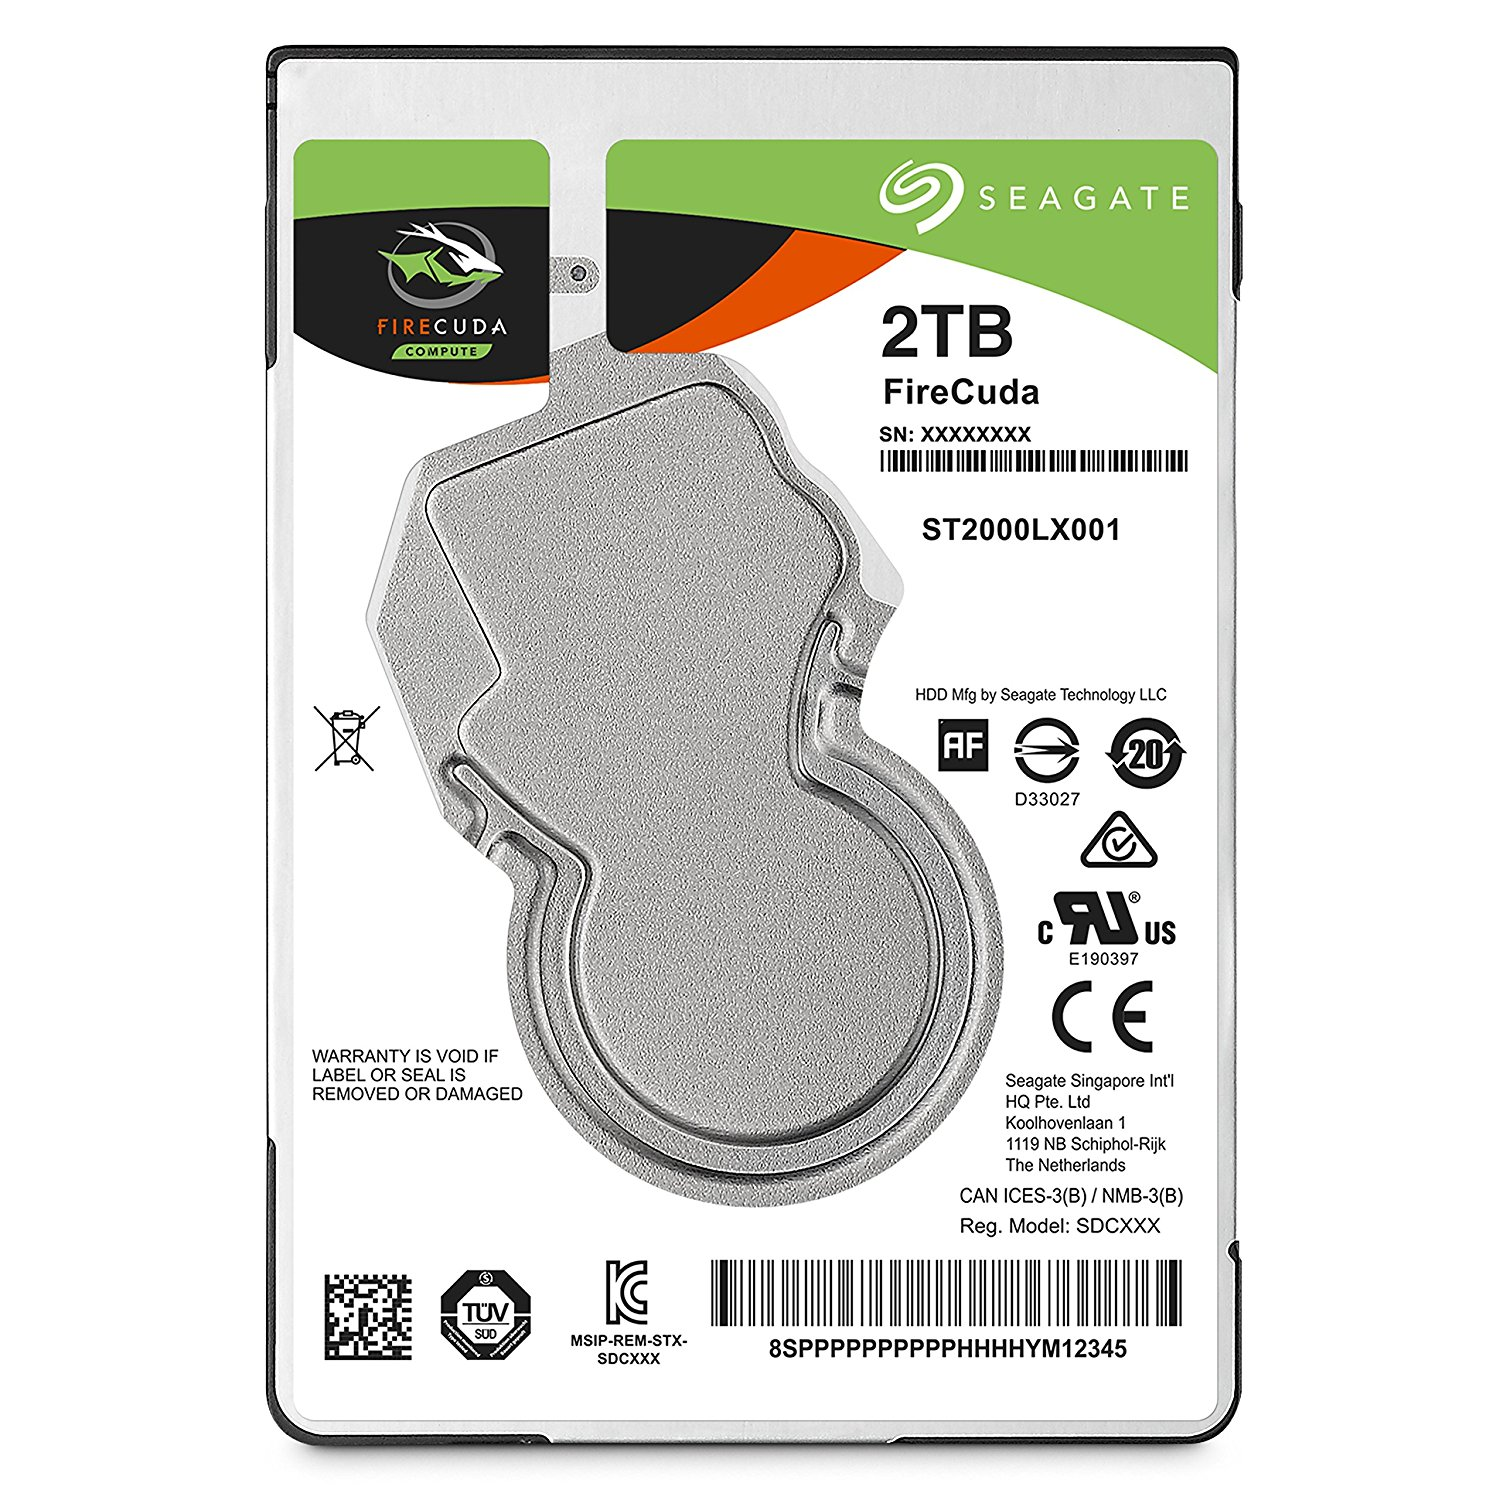 Seagate 2TB Firecuda Review